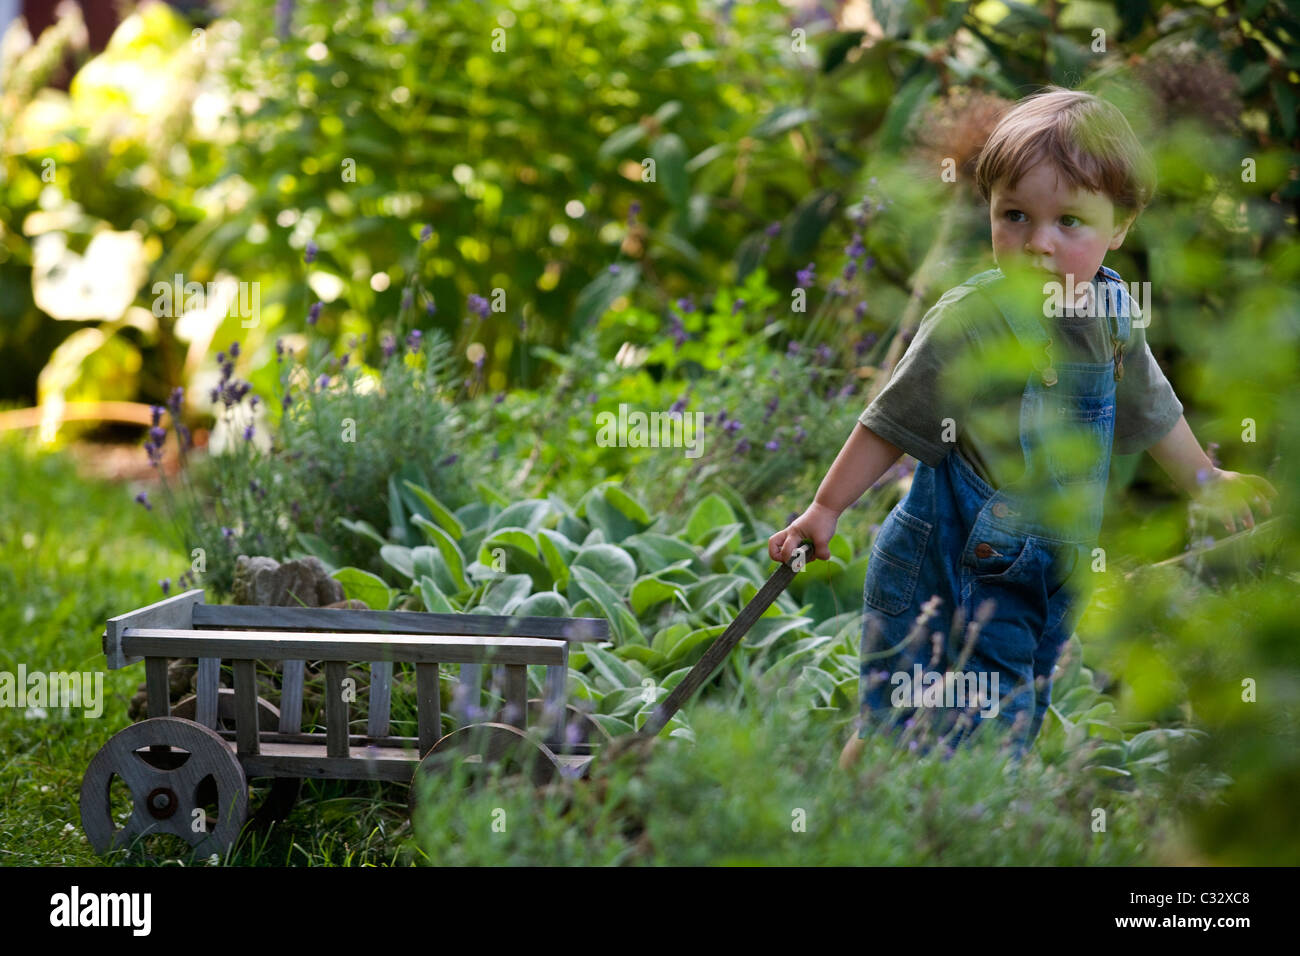 Two-year-old boy pulls wagon through garden. - Stock Image